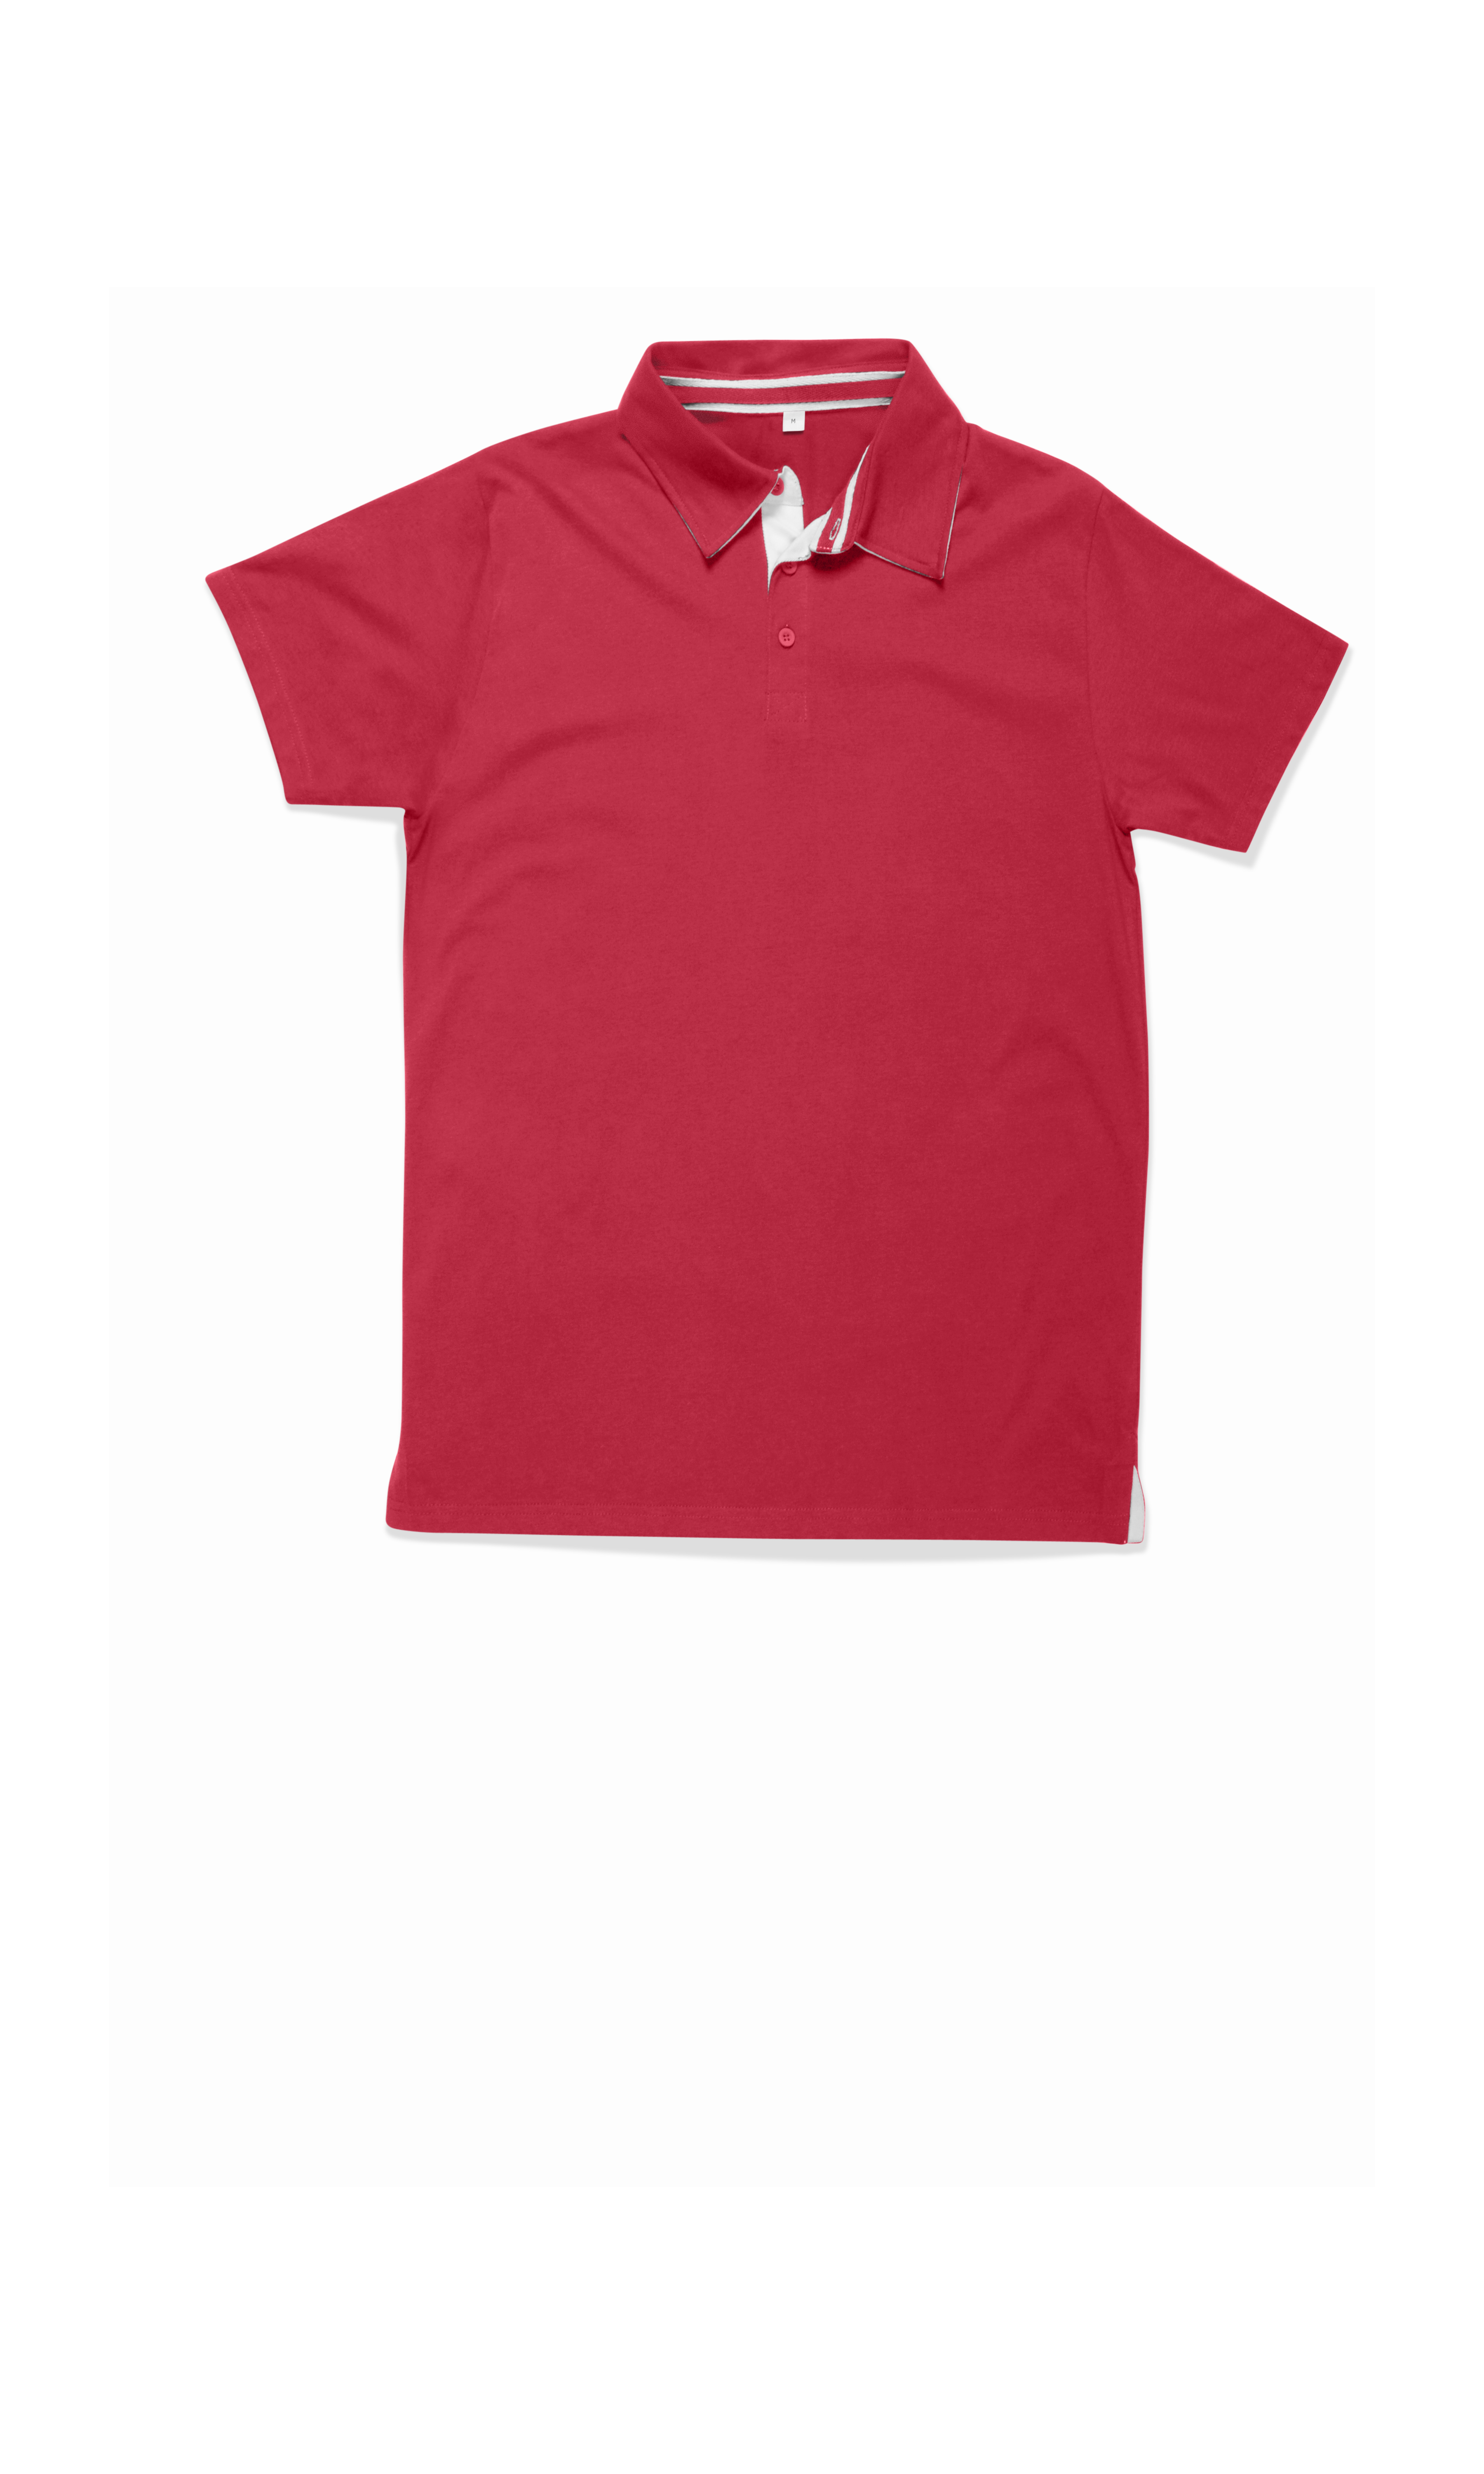 Mens Supersoft Rugby Top - Warm Red - XXL